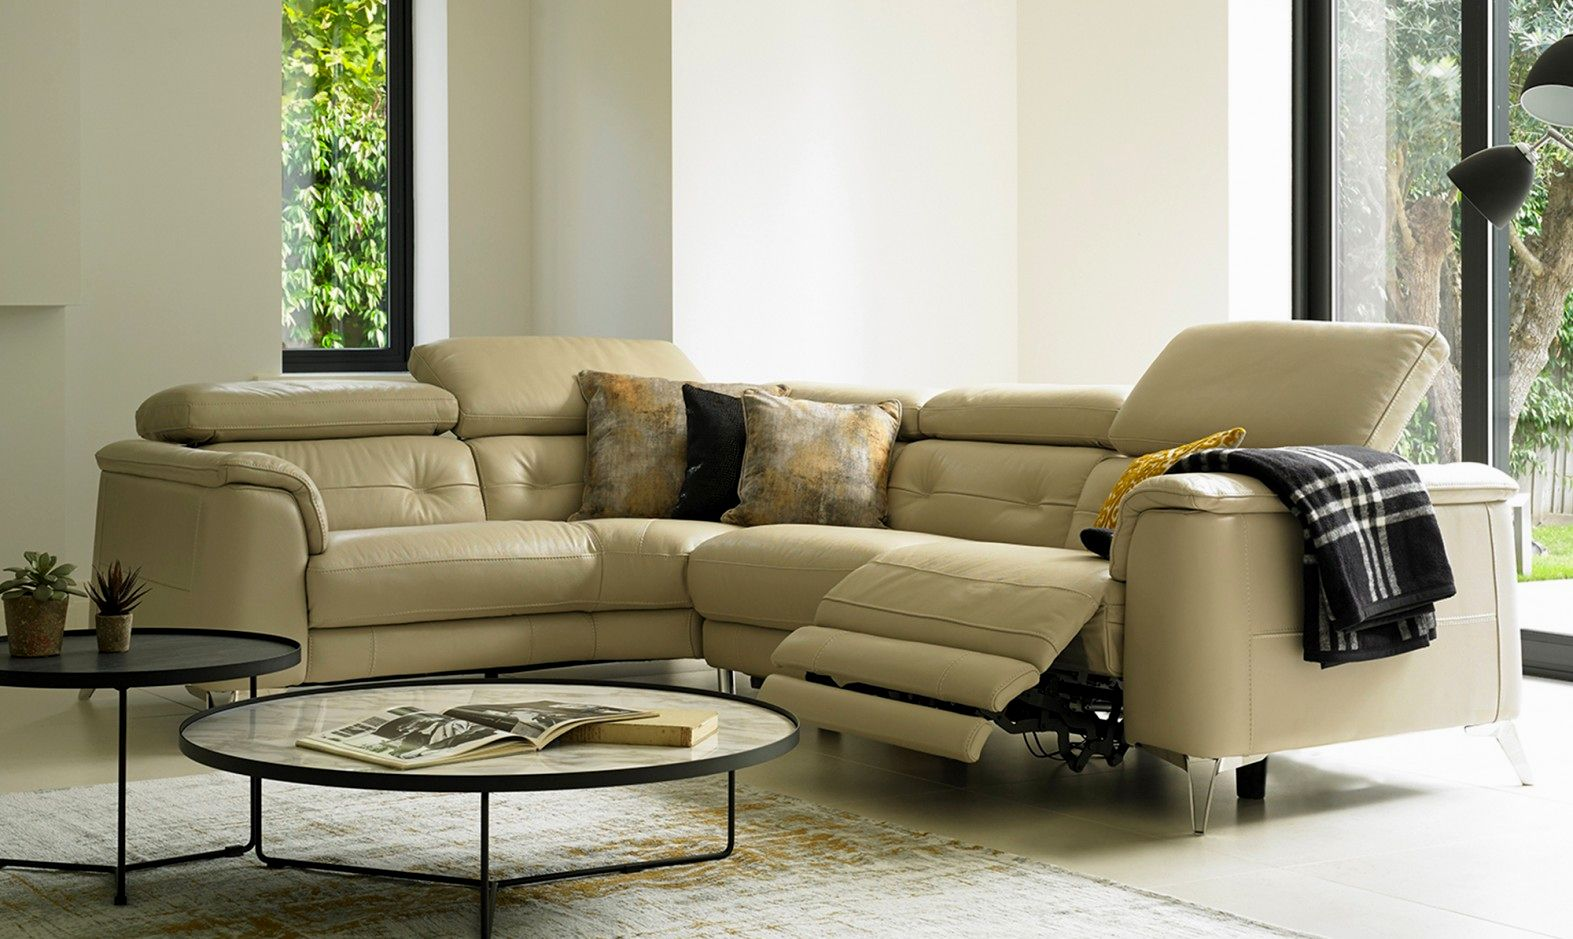 inspirational electric recliner sofa decoration-Luxury Electric Recliner sofa Image